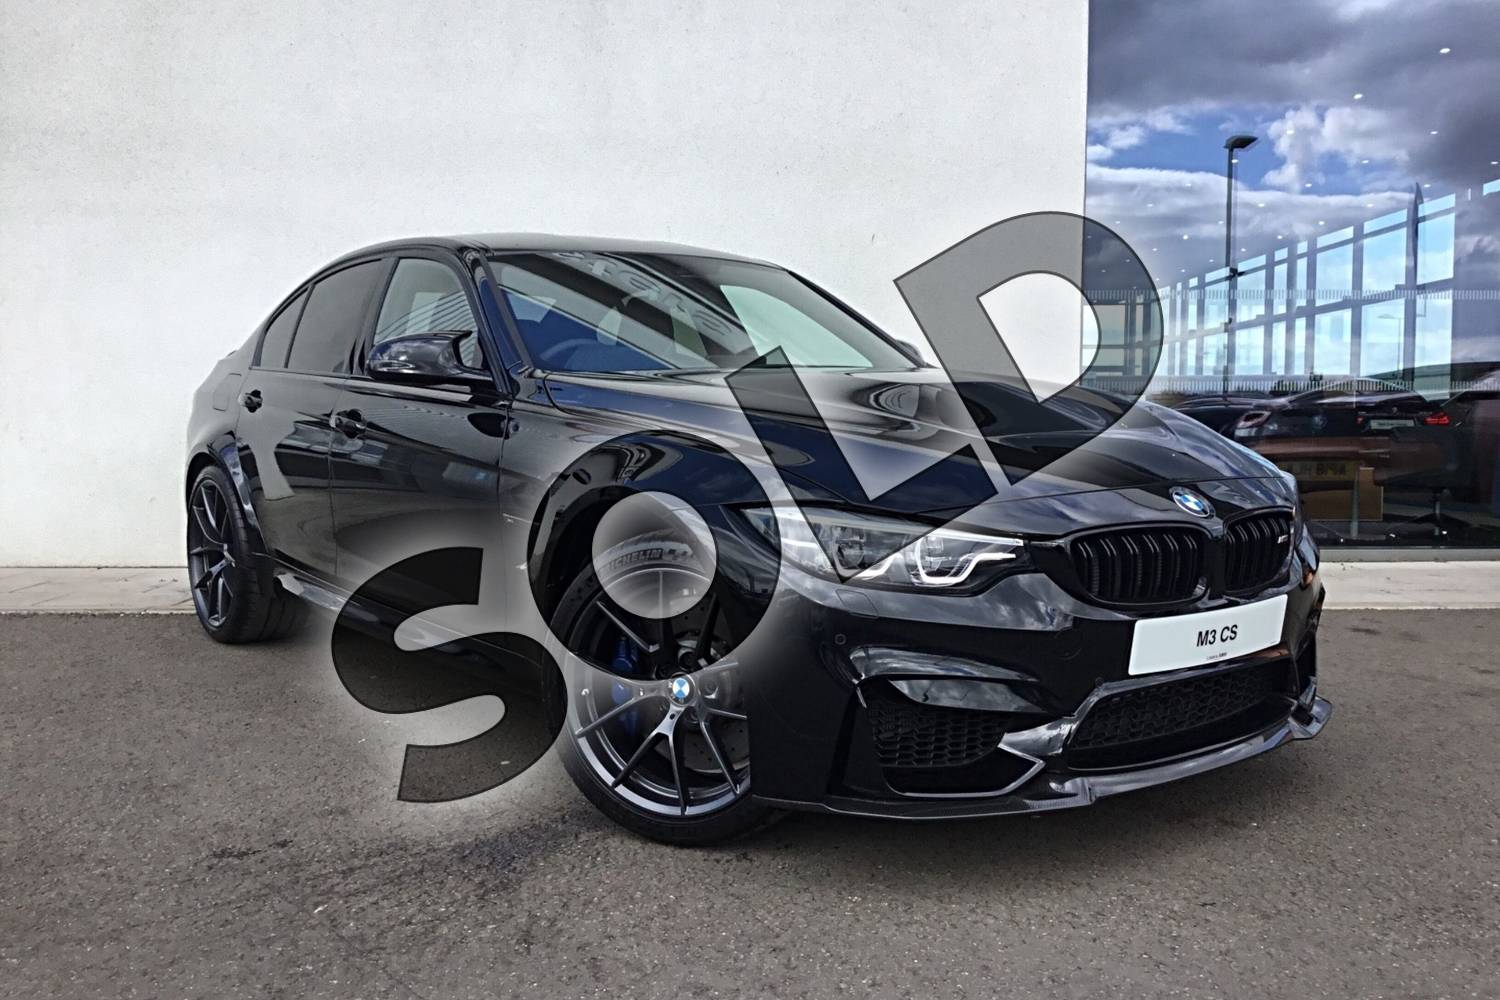 Bmw M3 Special Editions M3 Cs 4dr Dct For Sale At Listers